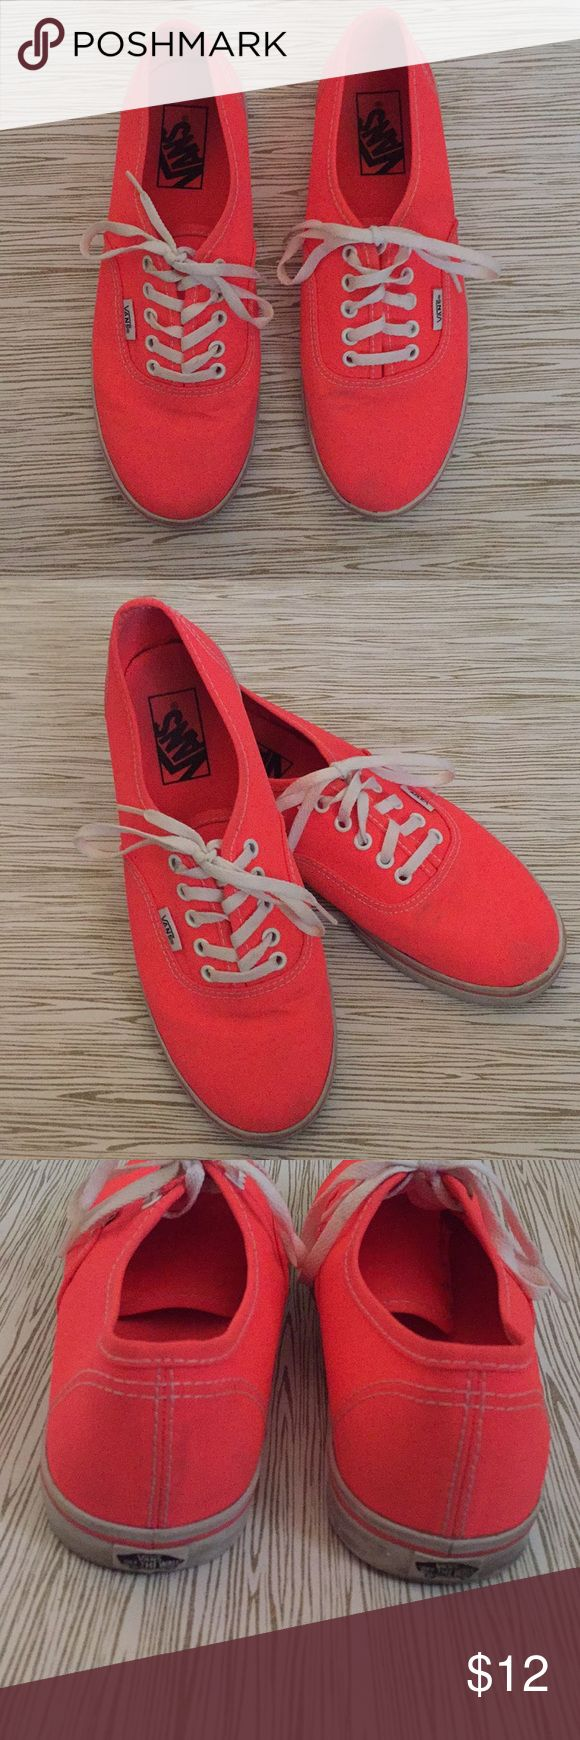 Women's Neon Vans Size 8 Nice used condition neon coral vans. This pair of shoes just needs a little TLC, they still have plenty of wear left in them.   Please see all photos to ensure you will be satisfied before purchasing!  Mens size 6.5  There are a few scuffs on the canvas and rubber sole  Smoke free home   Make an offer 💖 Vans Shoes Sneakers